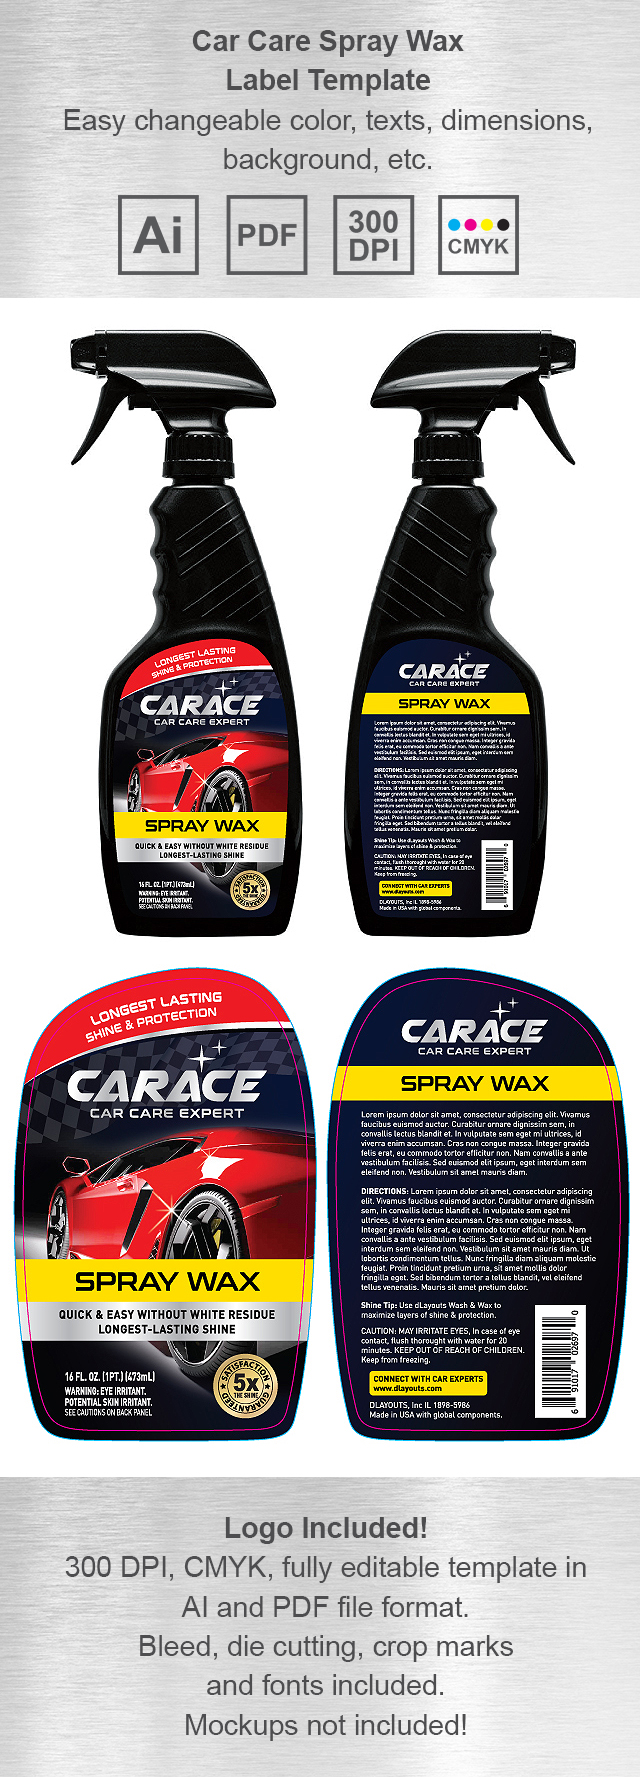 Car Care Spray Wax Label Template